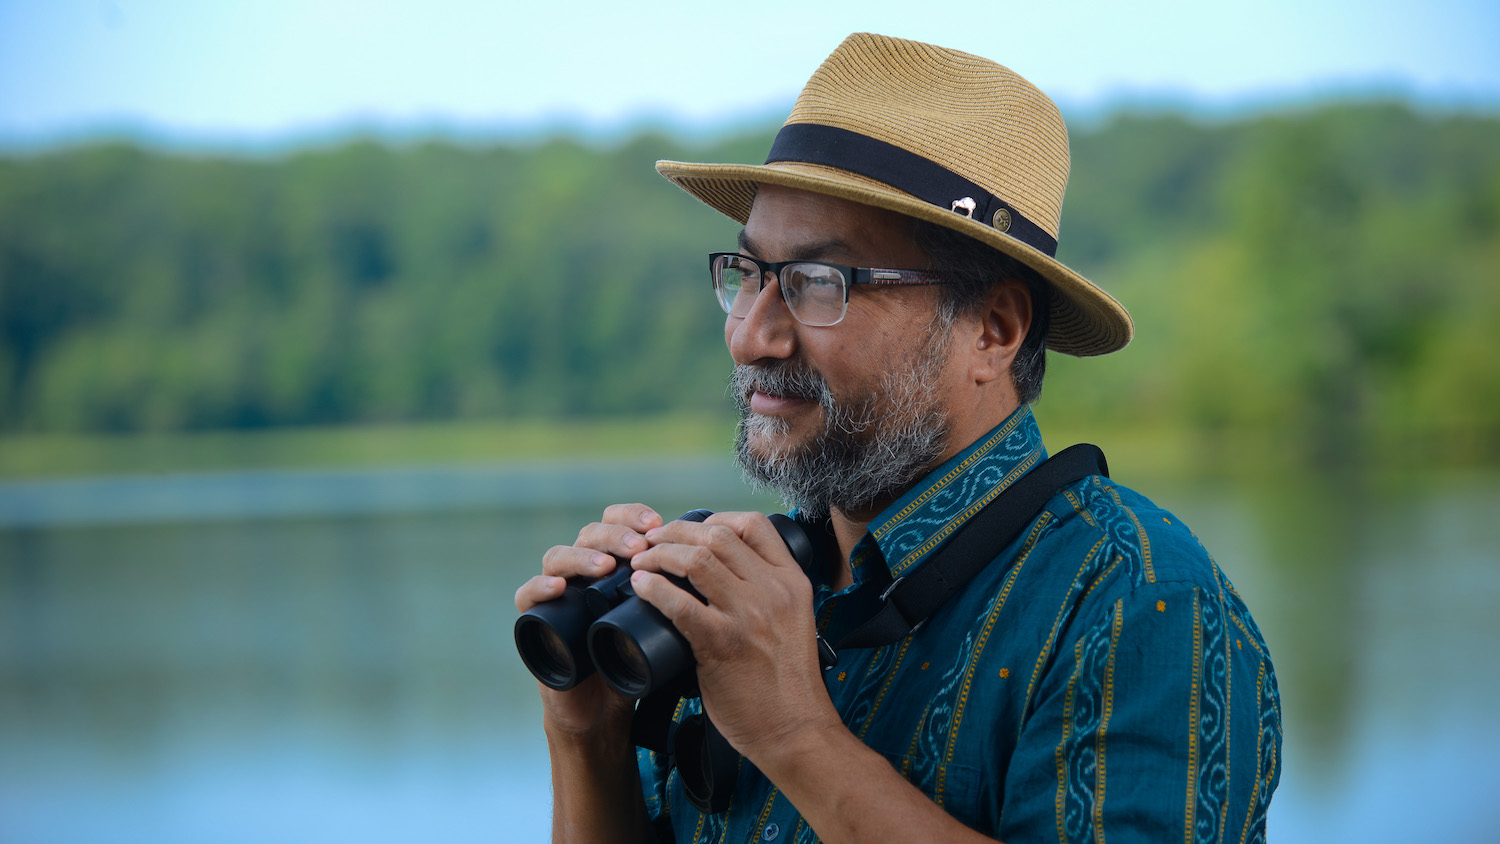 Dr. Katti Outdoors - Faculty Profile: Dr. Madhusudan Katti - Forestry and Environmental Resources NC State University